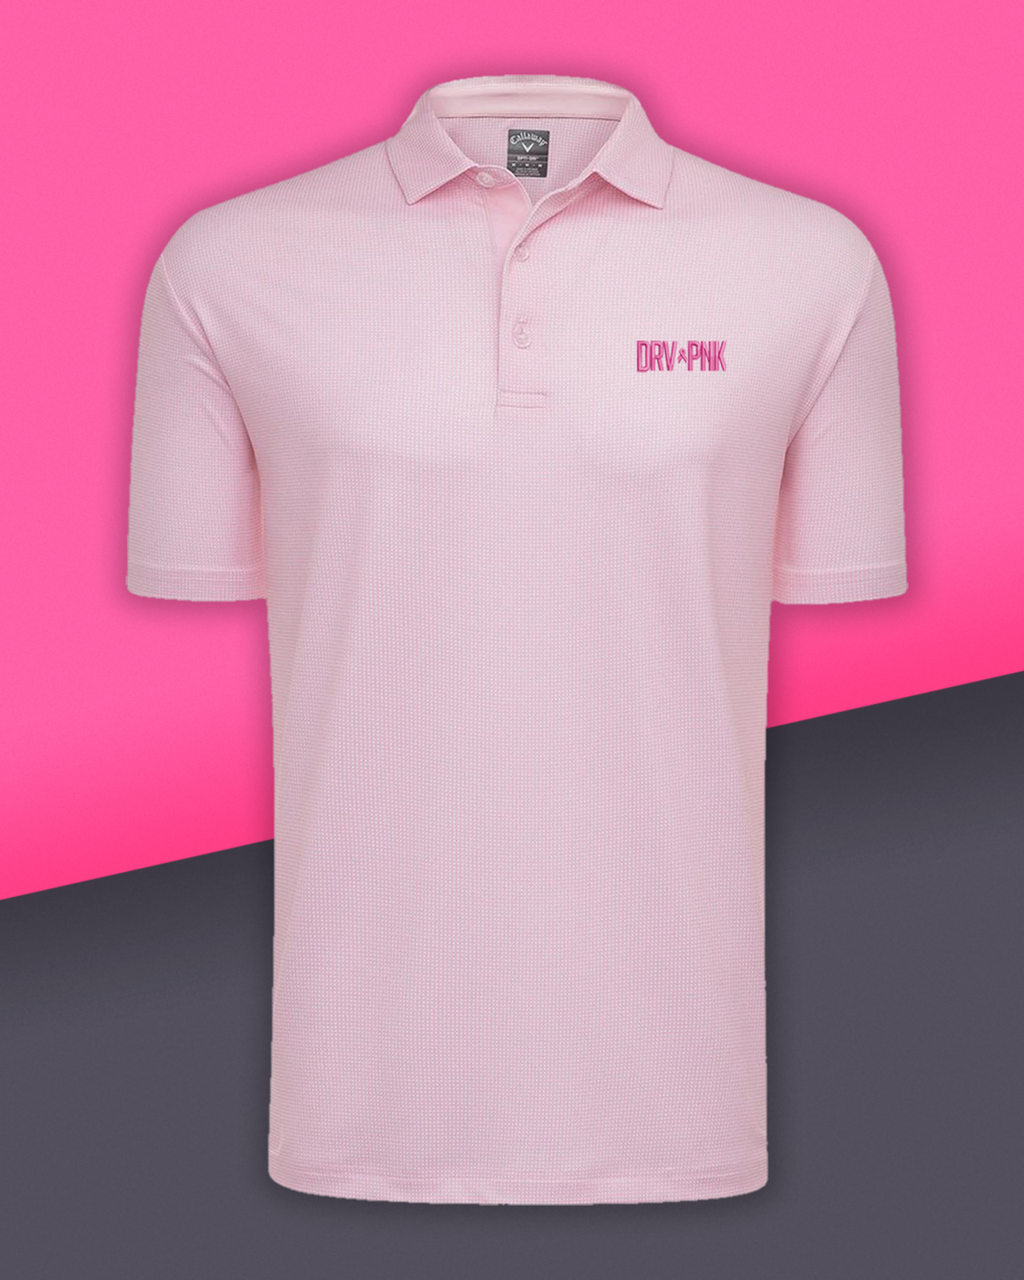 Calloway - Men's Drive Pink Gingham Golf Polo - Pink